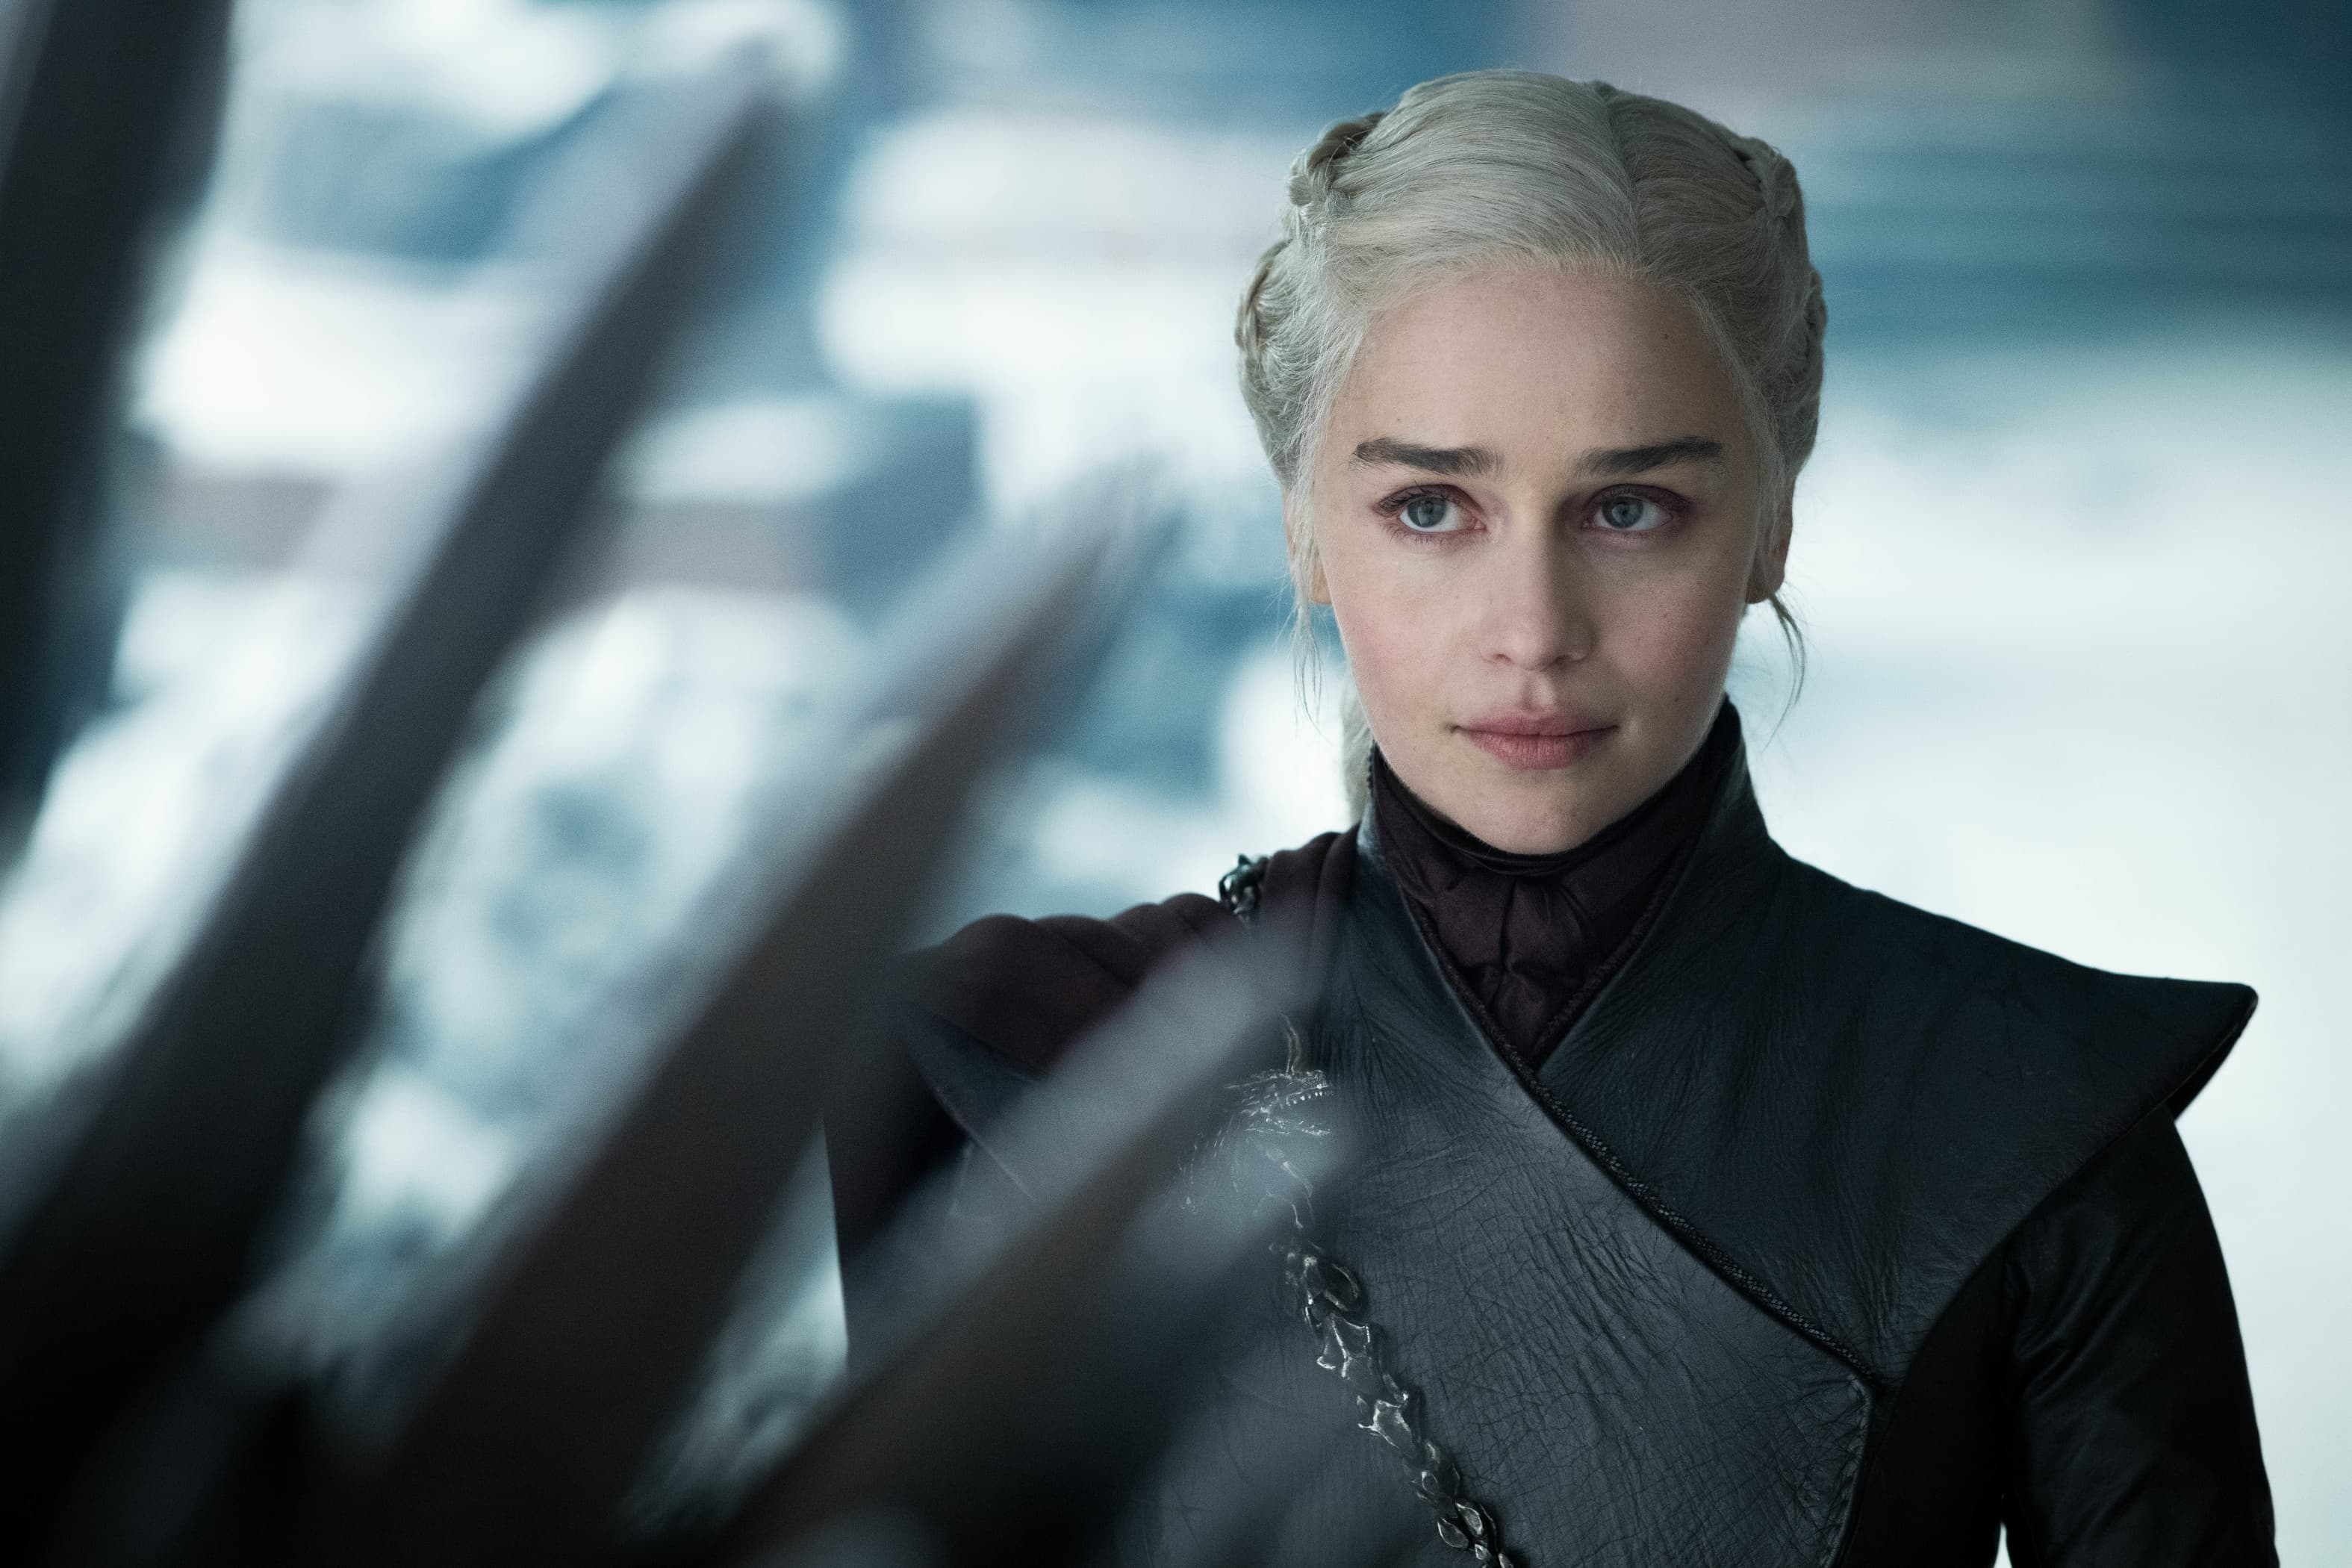 The epic flameout of Daenerys Targaryen left many Game of Thrones fans disappointed.